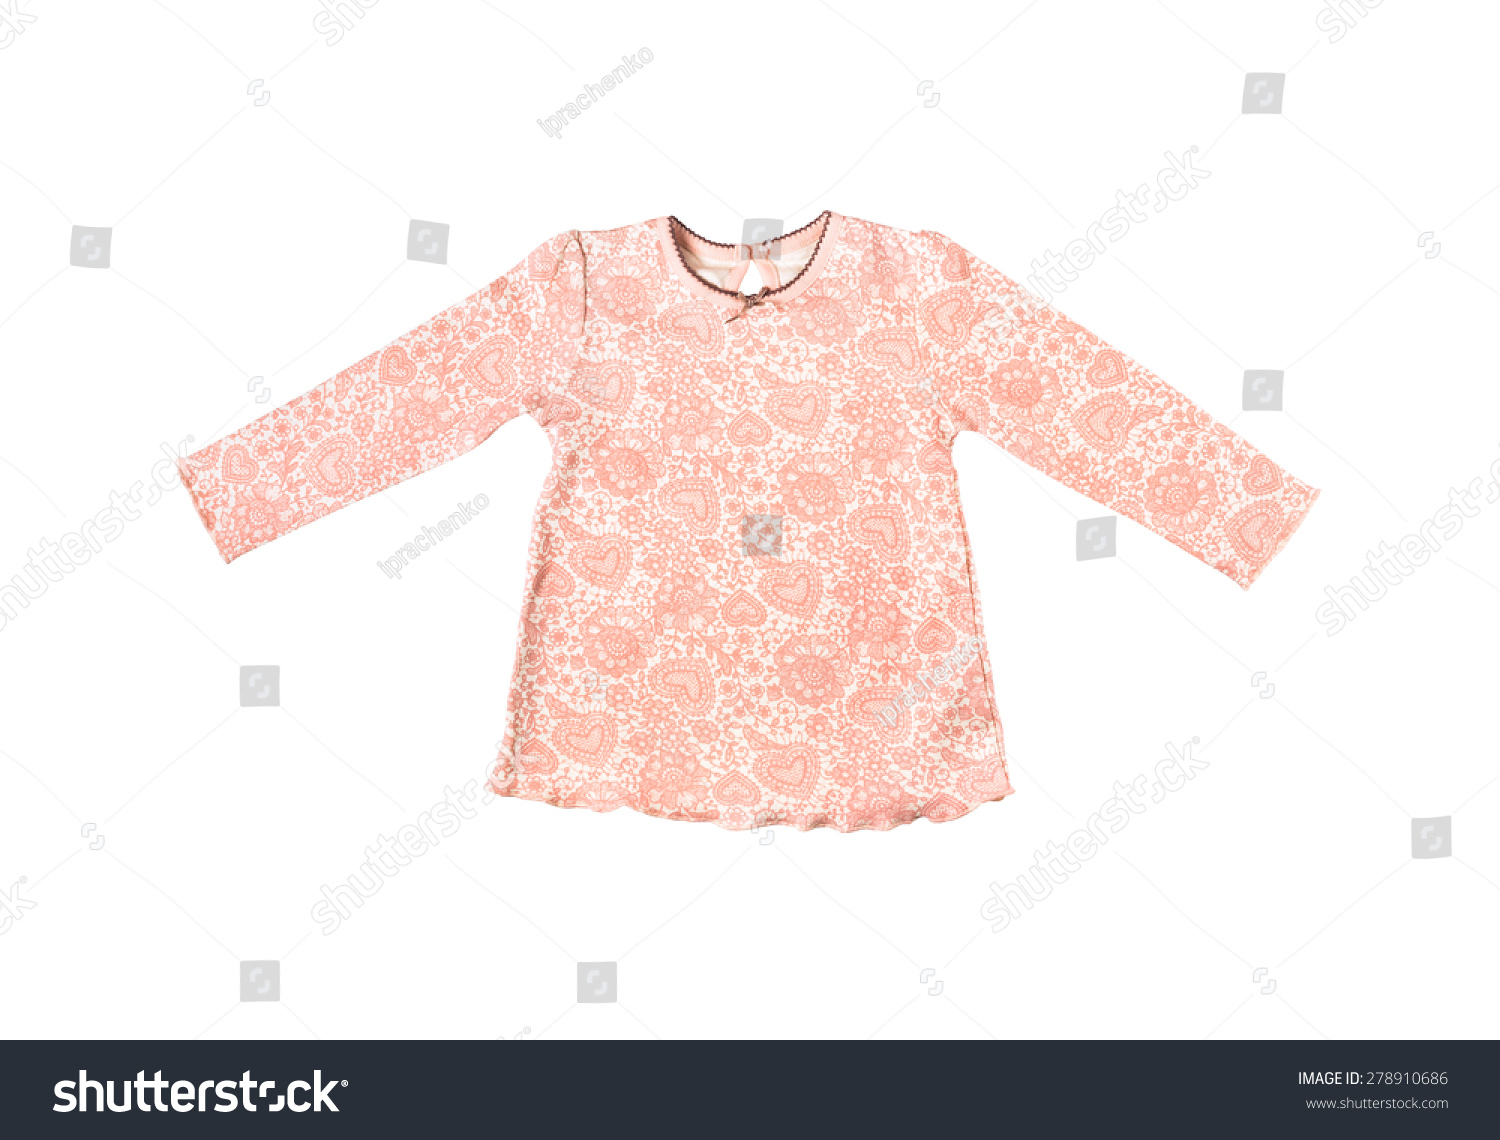 The Little Girl'S Pink Tshirt With Long Sleeves In Flowers ...